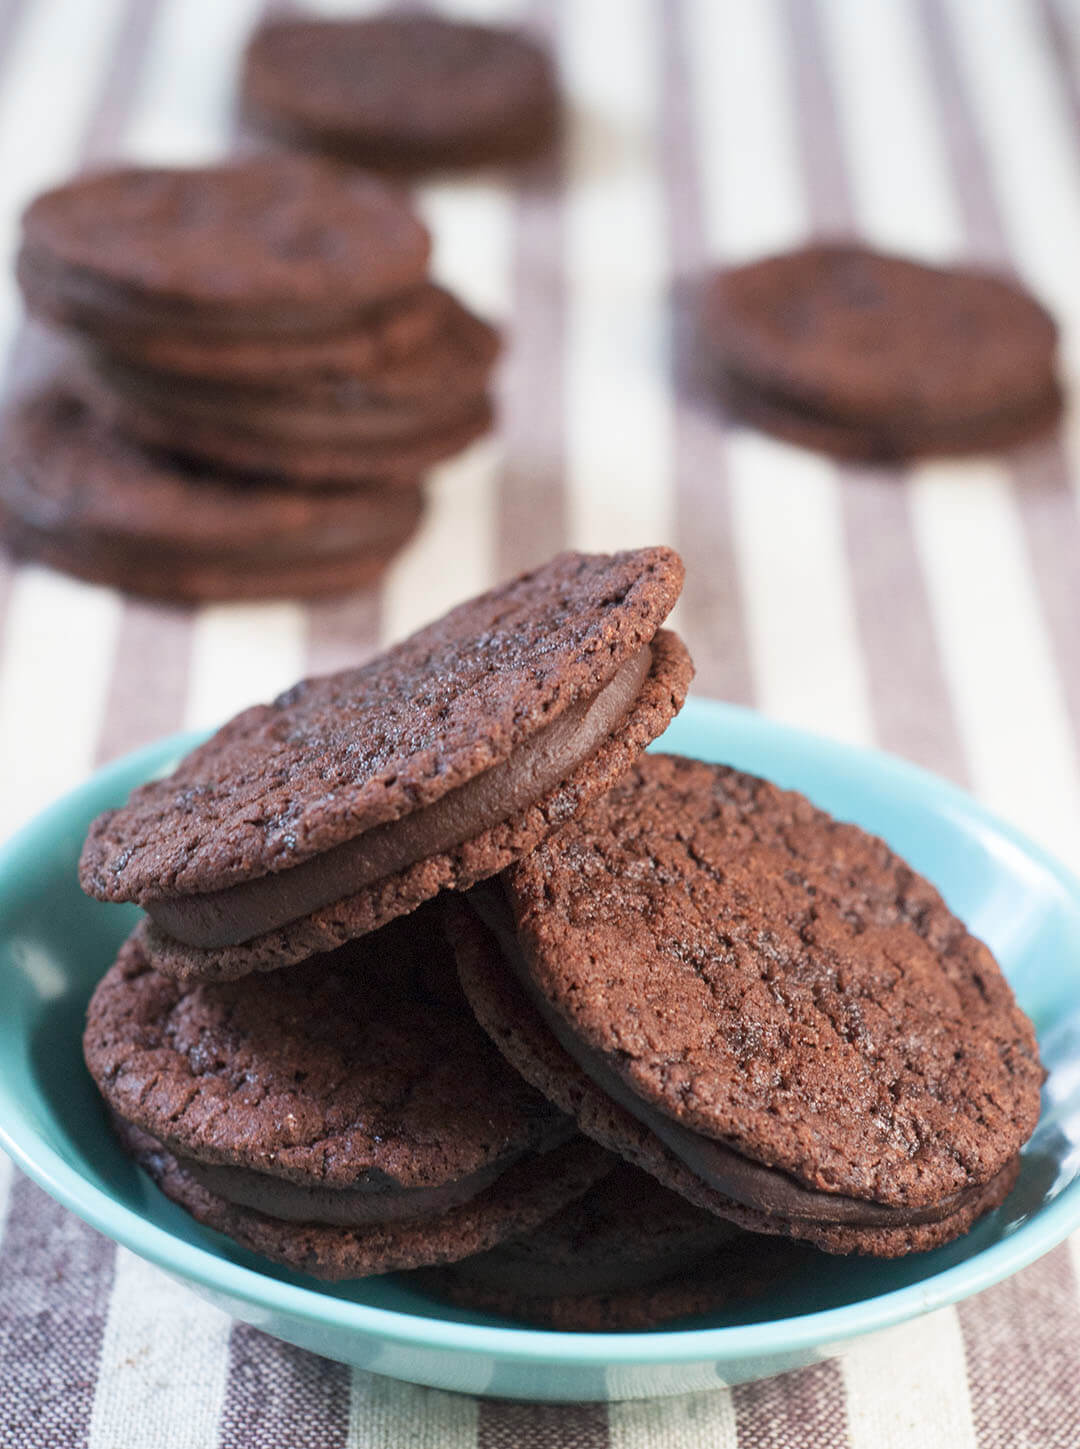 Chocolate cookies with ganache filling in a bowl